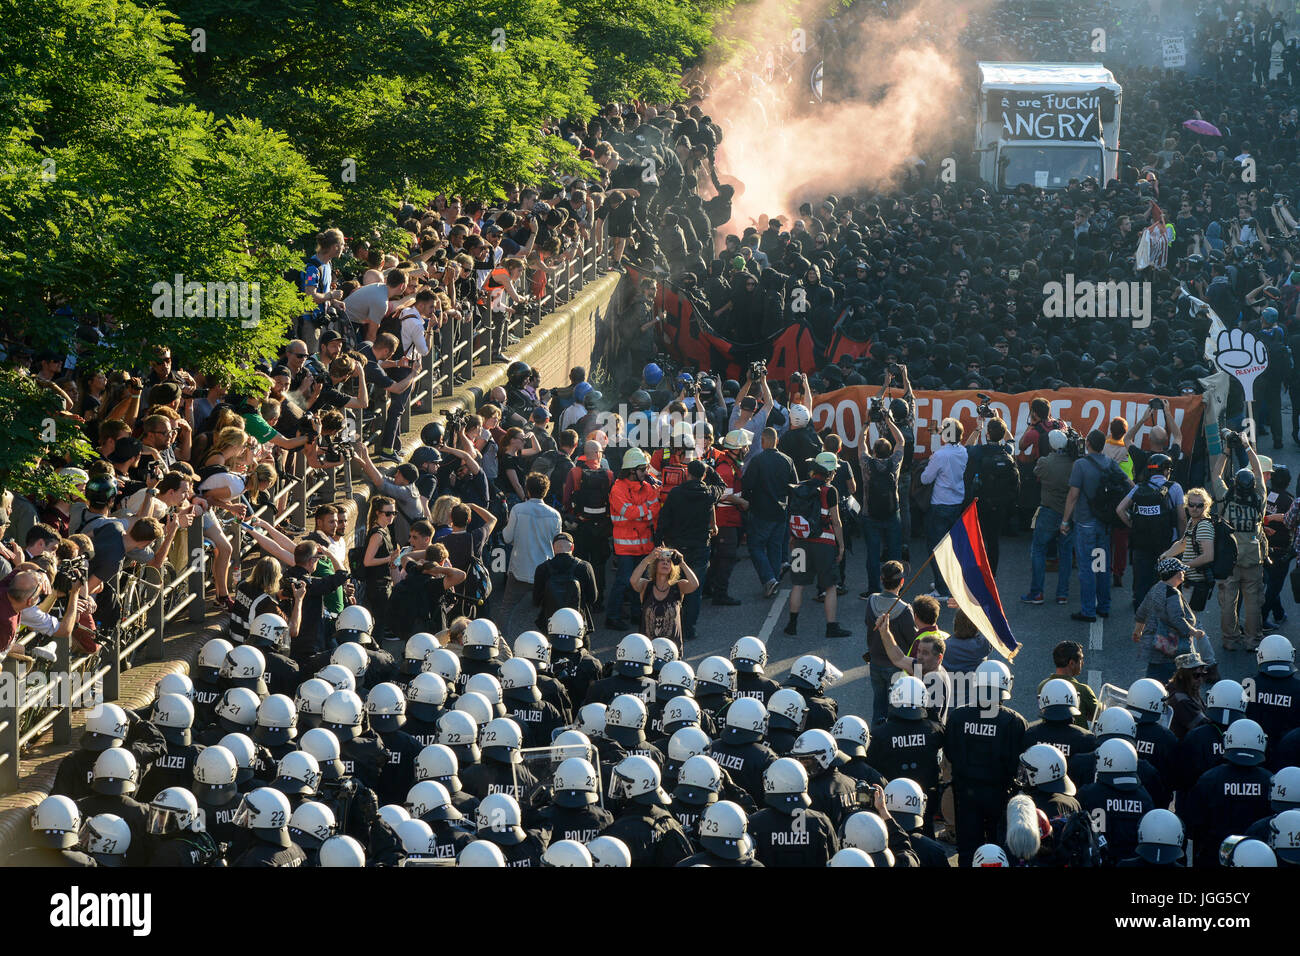 Hamburg, Germany. 6th July, 2017. fish market, protest rally 'G-20 WELCOME TO HELL' against G-20 summit - Stock Image